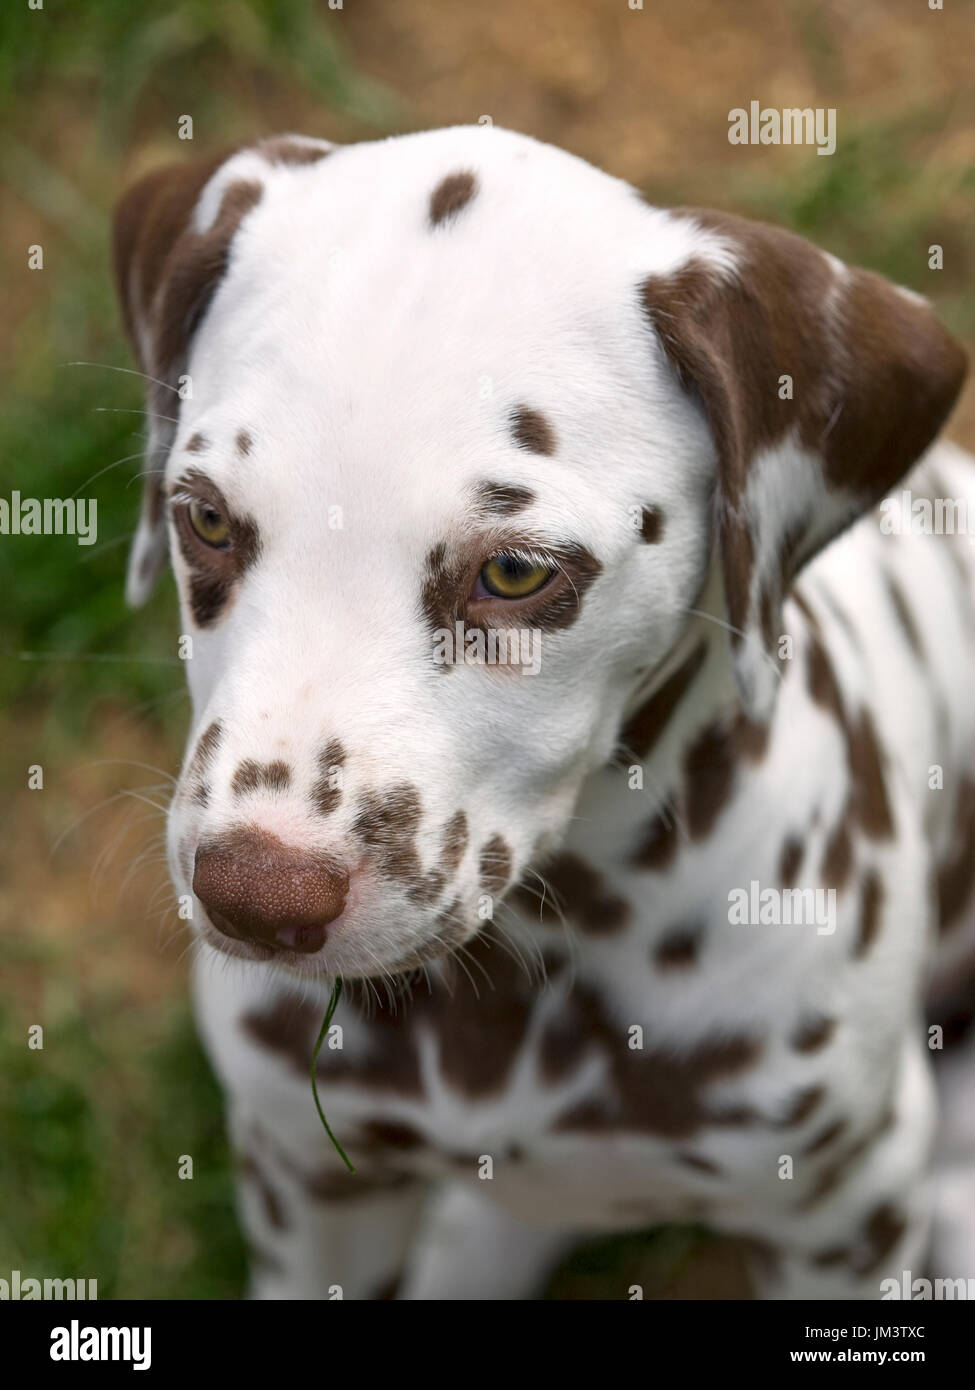 headshot of a liver colored dalmatian puppy - Stock Image